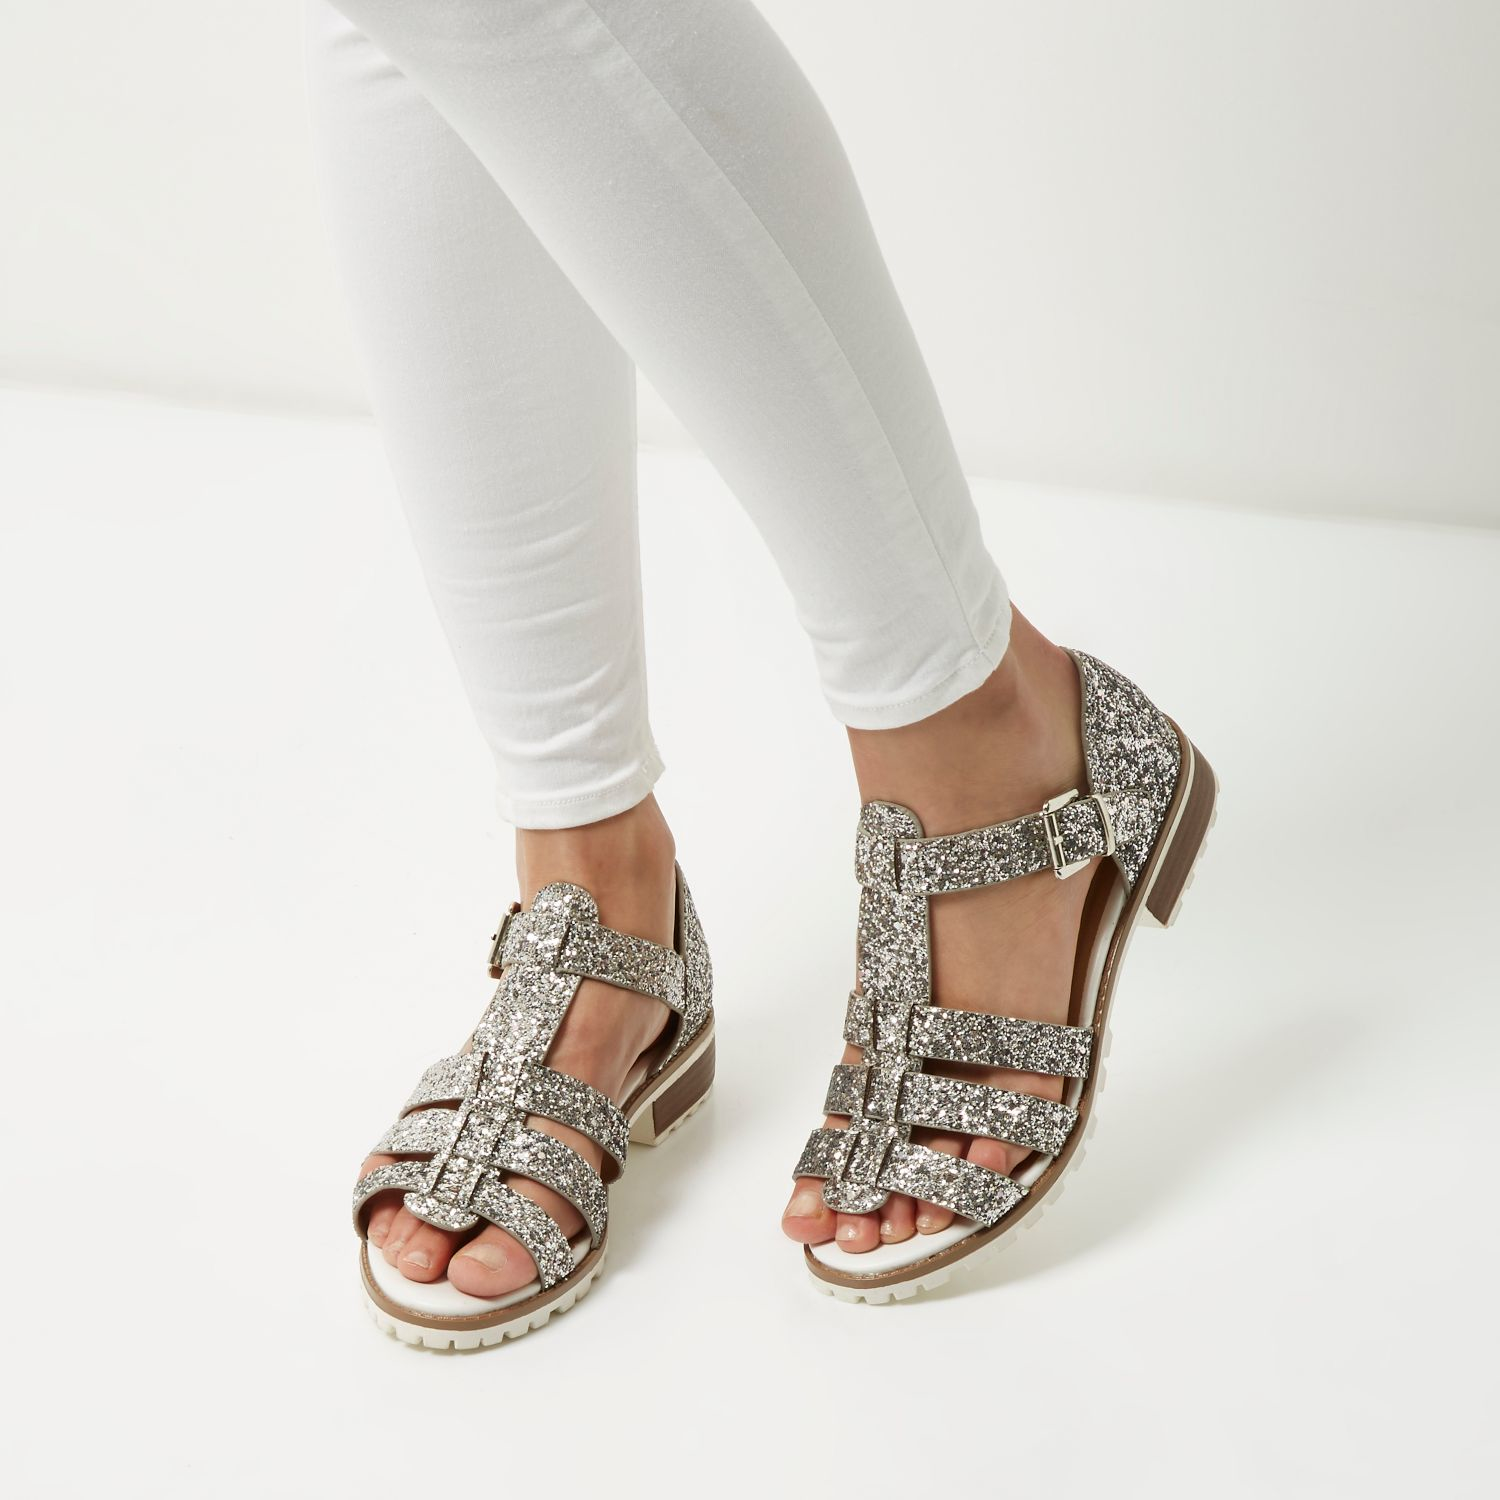 7ae9a47d574961 Lyst - River Island Silver Glitter Strappy Geek Sandals in Gray